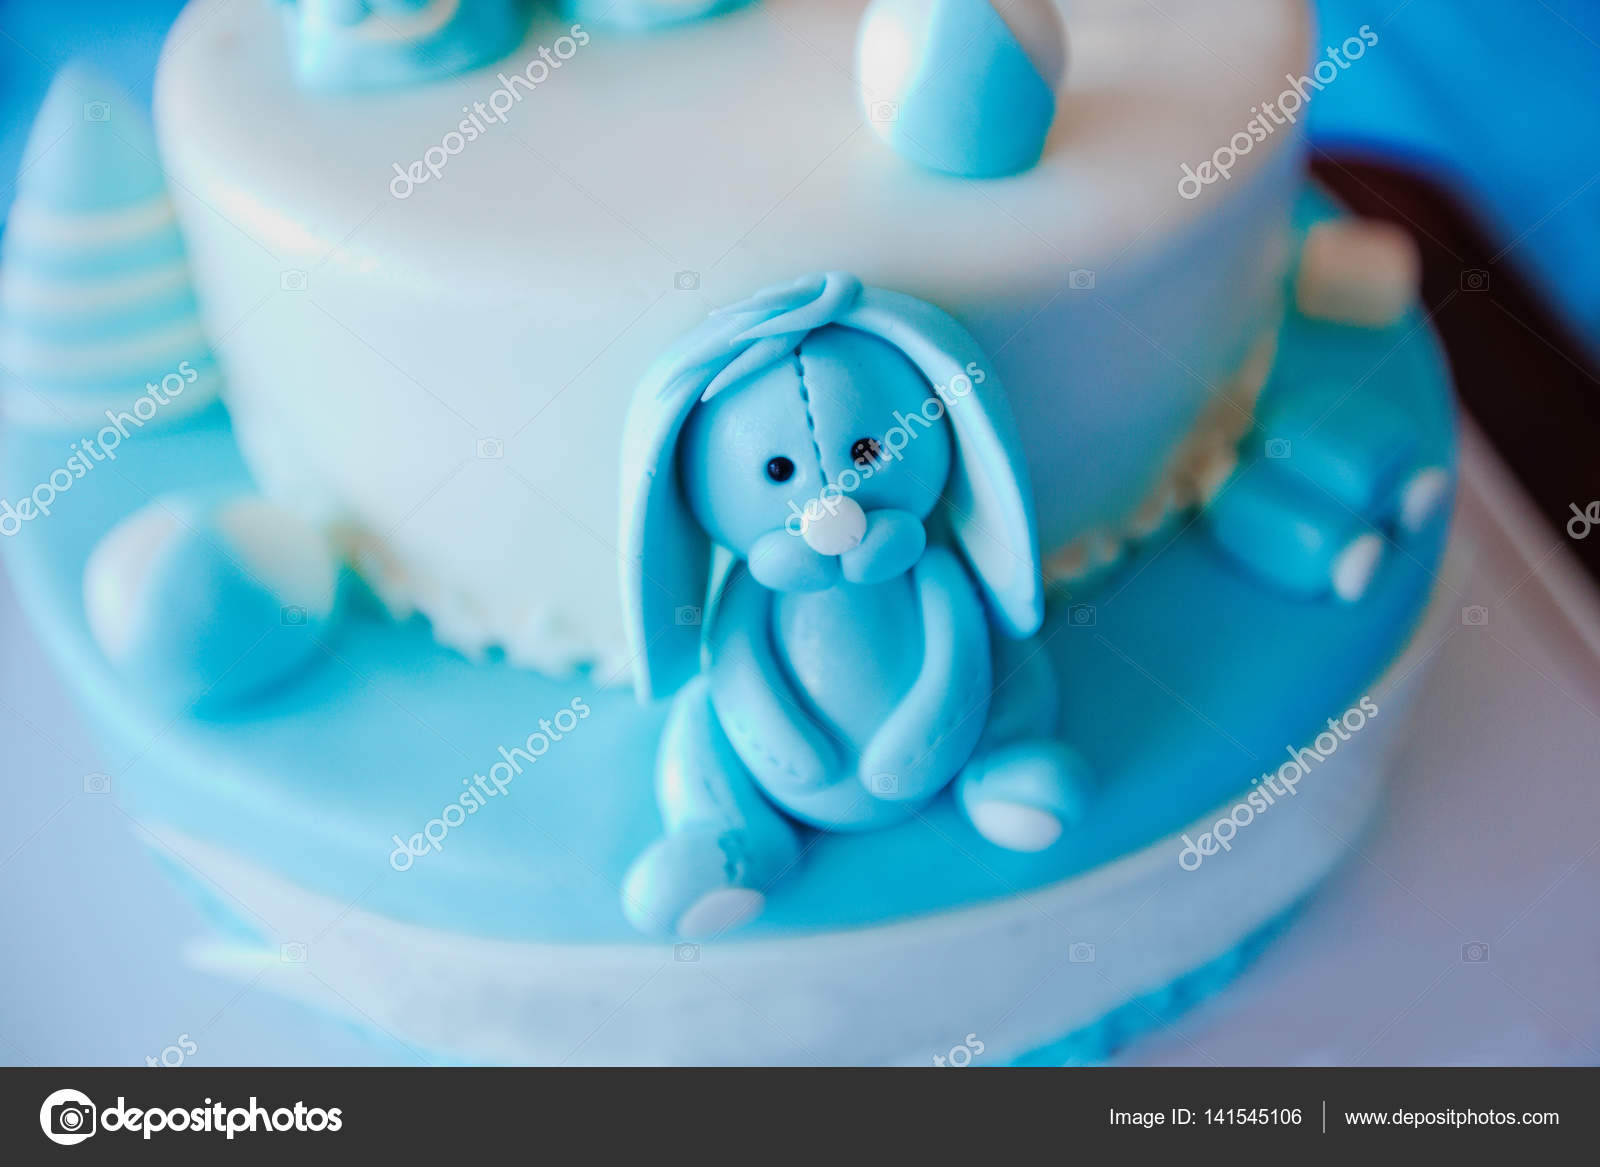 Birthday Cake For 1 Year Old Boy Stock Image